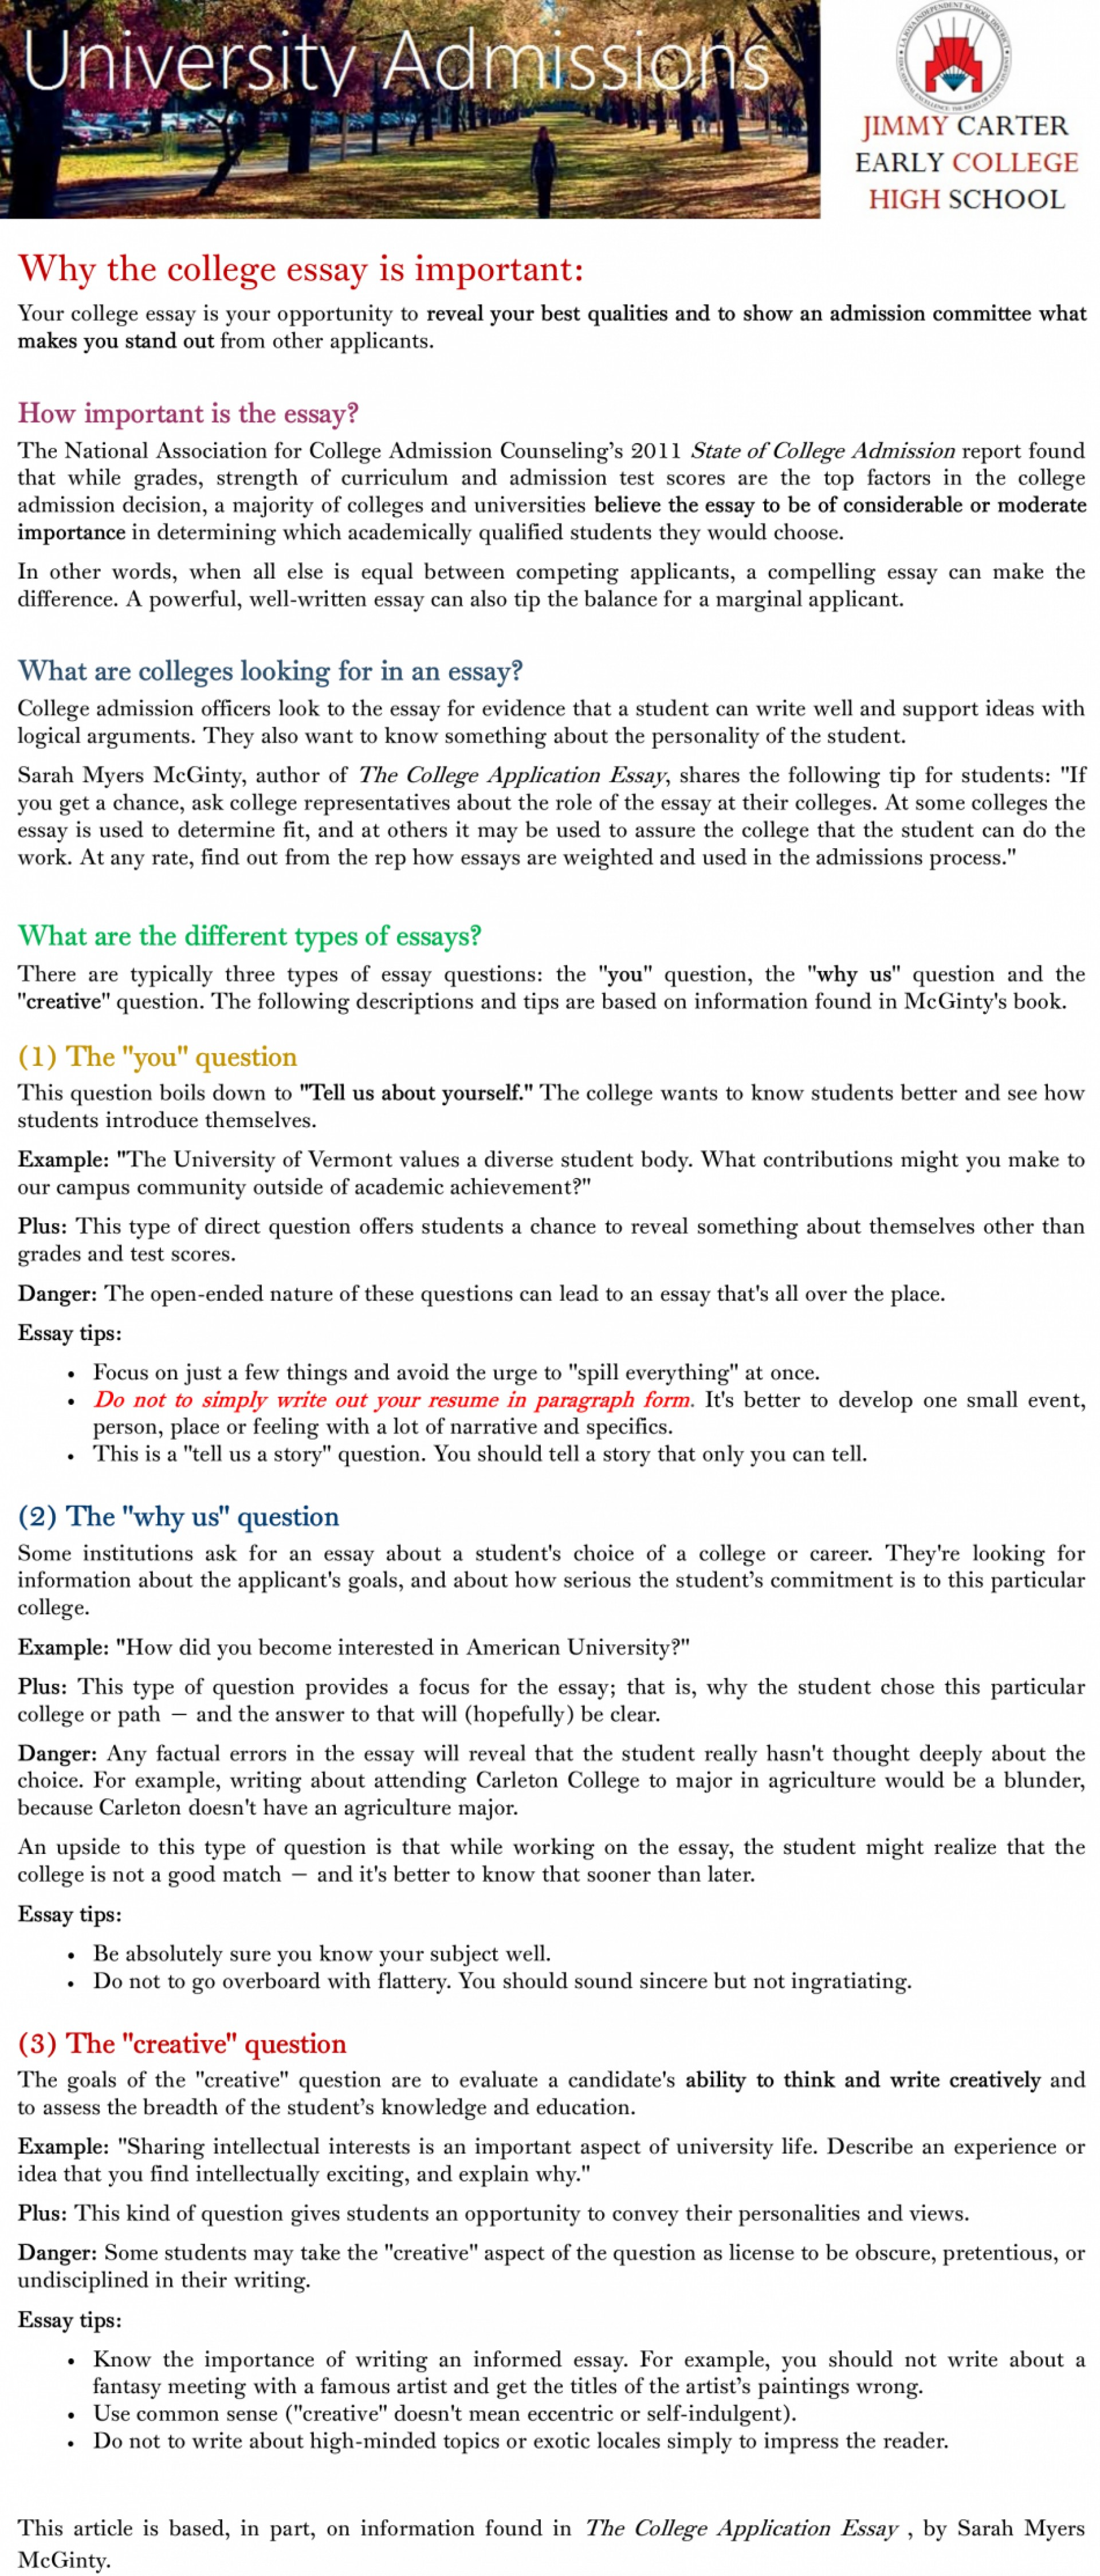 025 College Admission Essay Example Img Pd 015819 1hrlsw Rare Prompts Format Examples Ivy League 1920